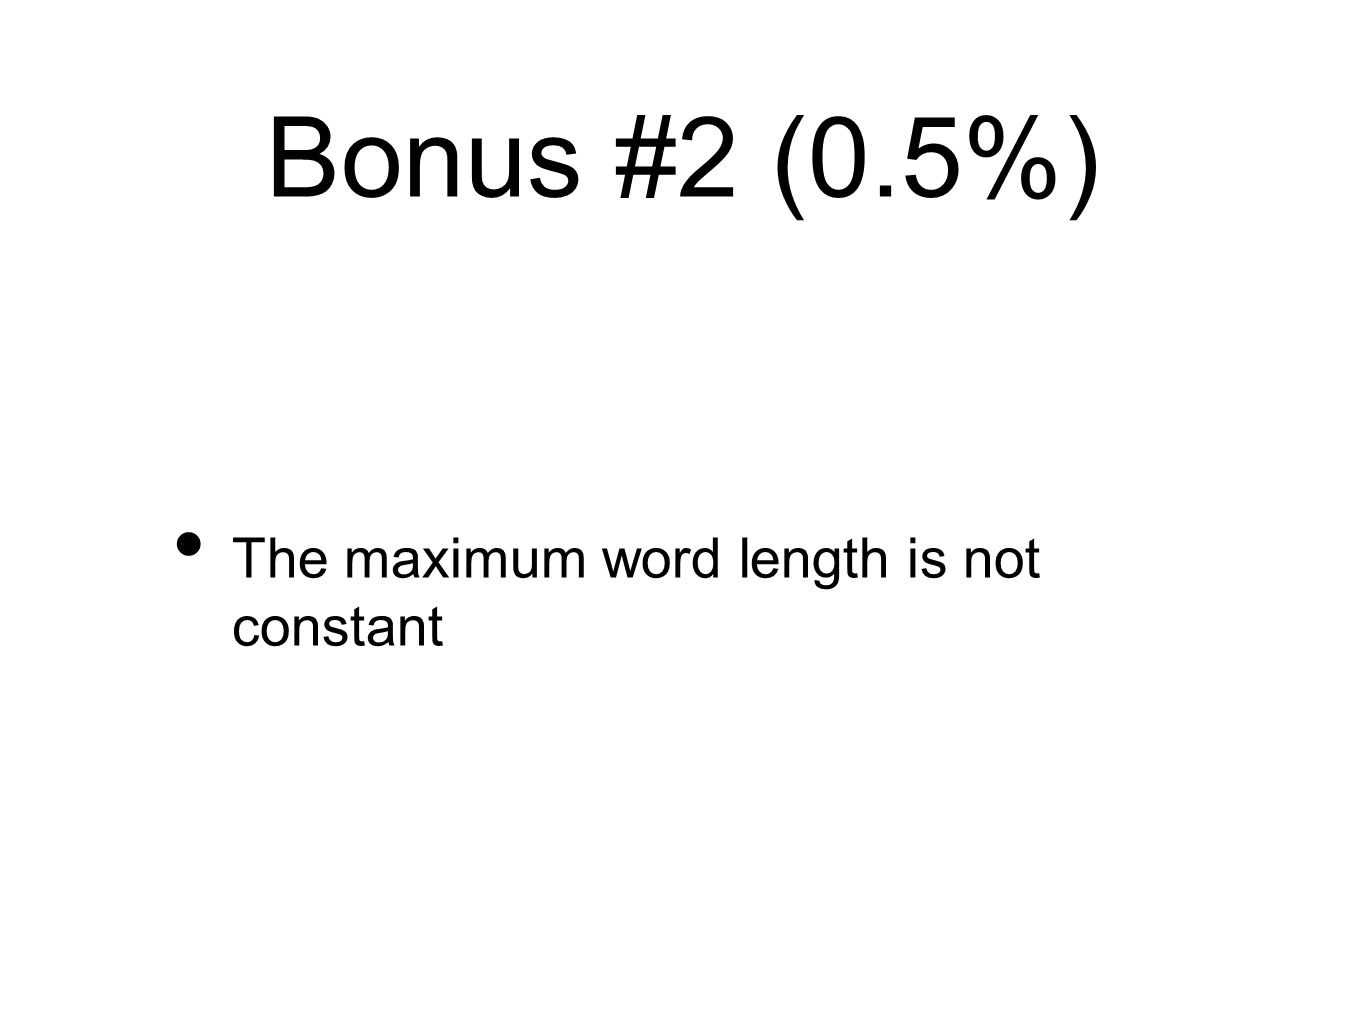 Bonus #2 (0.5%) The maximum word length is not constant